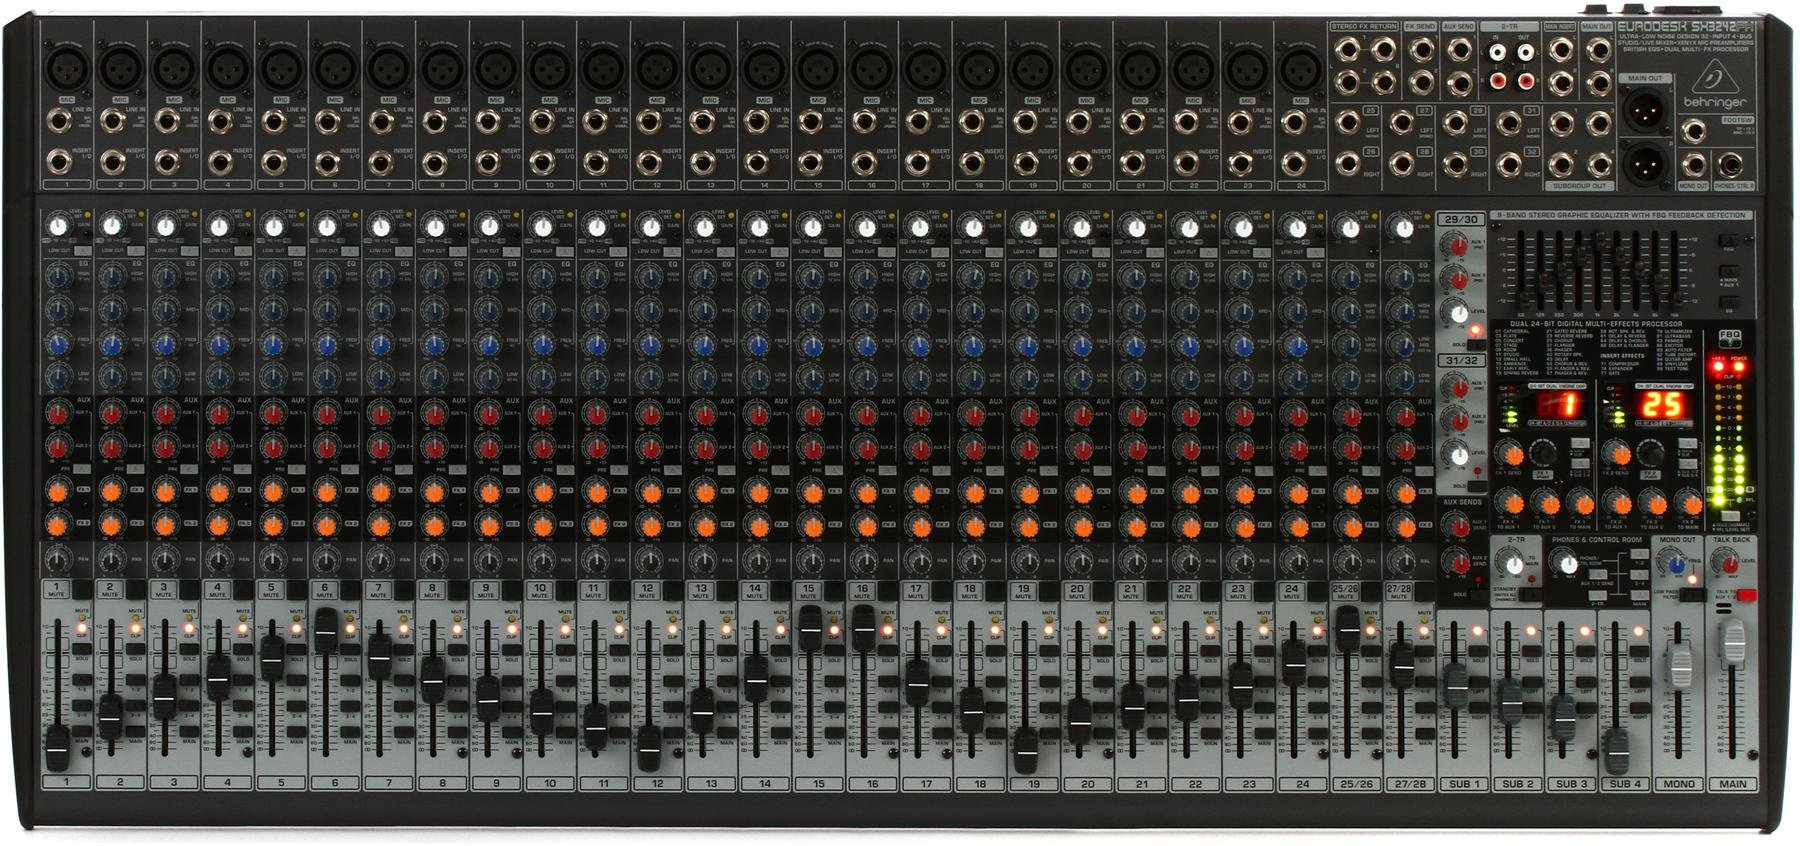 Behringer Eurodesk Sx3242fx Mixer With Effects Sweetwater Radikalsac2kusbcablewiringdiagramnormalusbcable Image 1